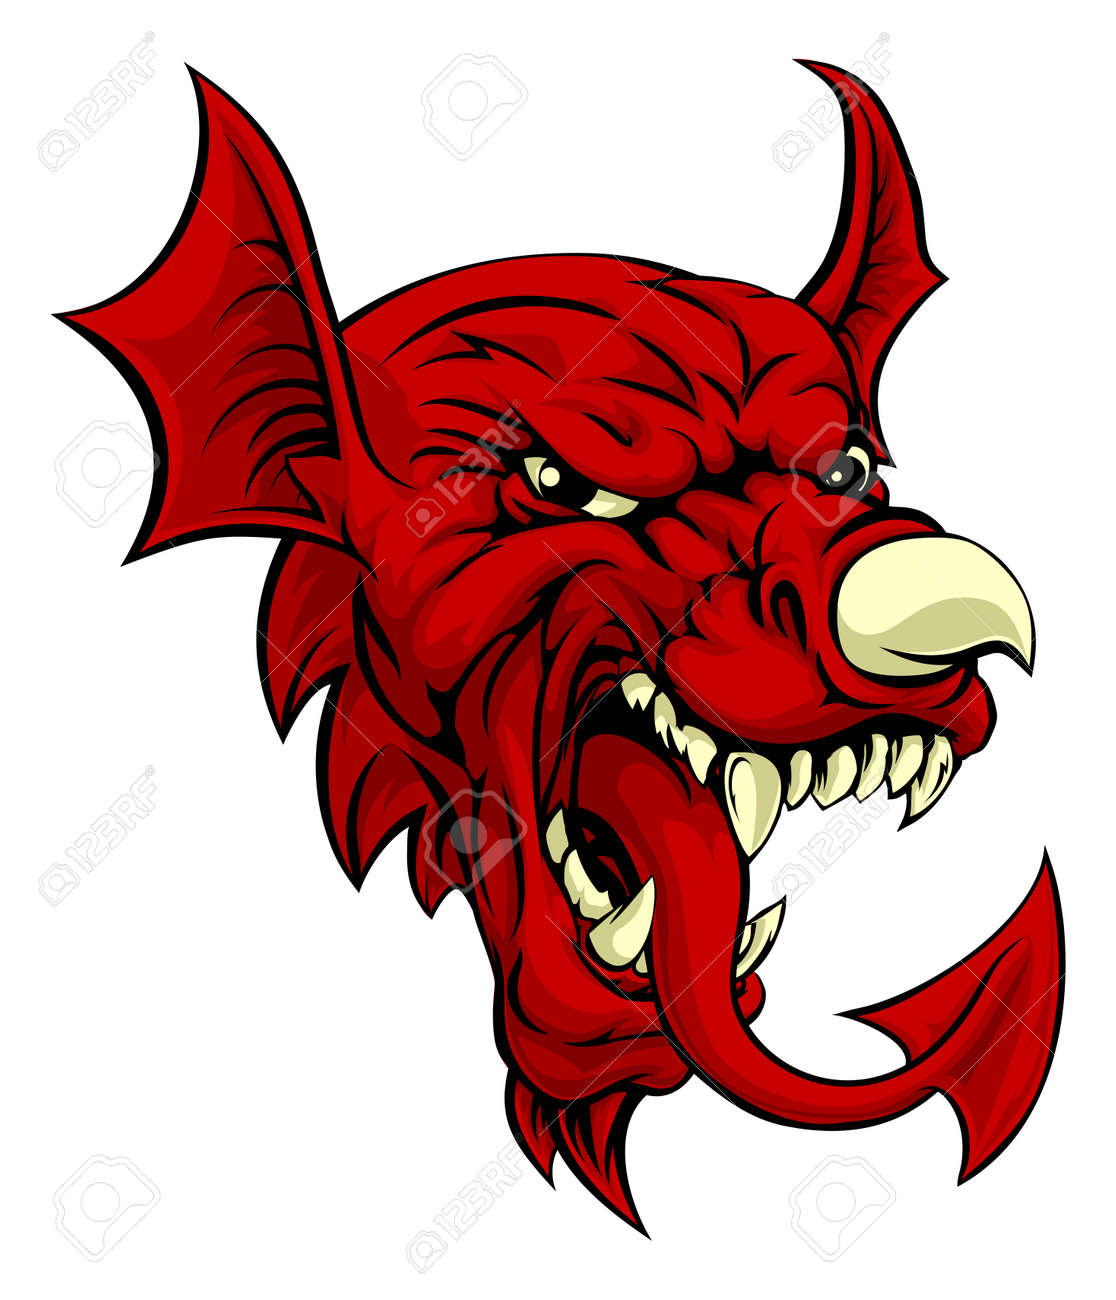 1526 welsh dragon stock vector illustration and royalty free an illustration of the welsh national symbol of the red dragon y ddraig goch with the biocorpaavc Image collections